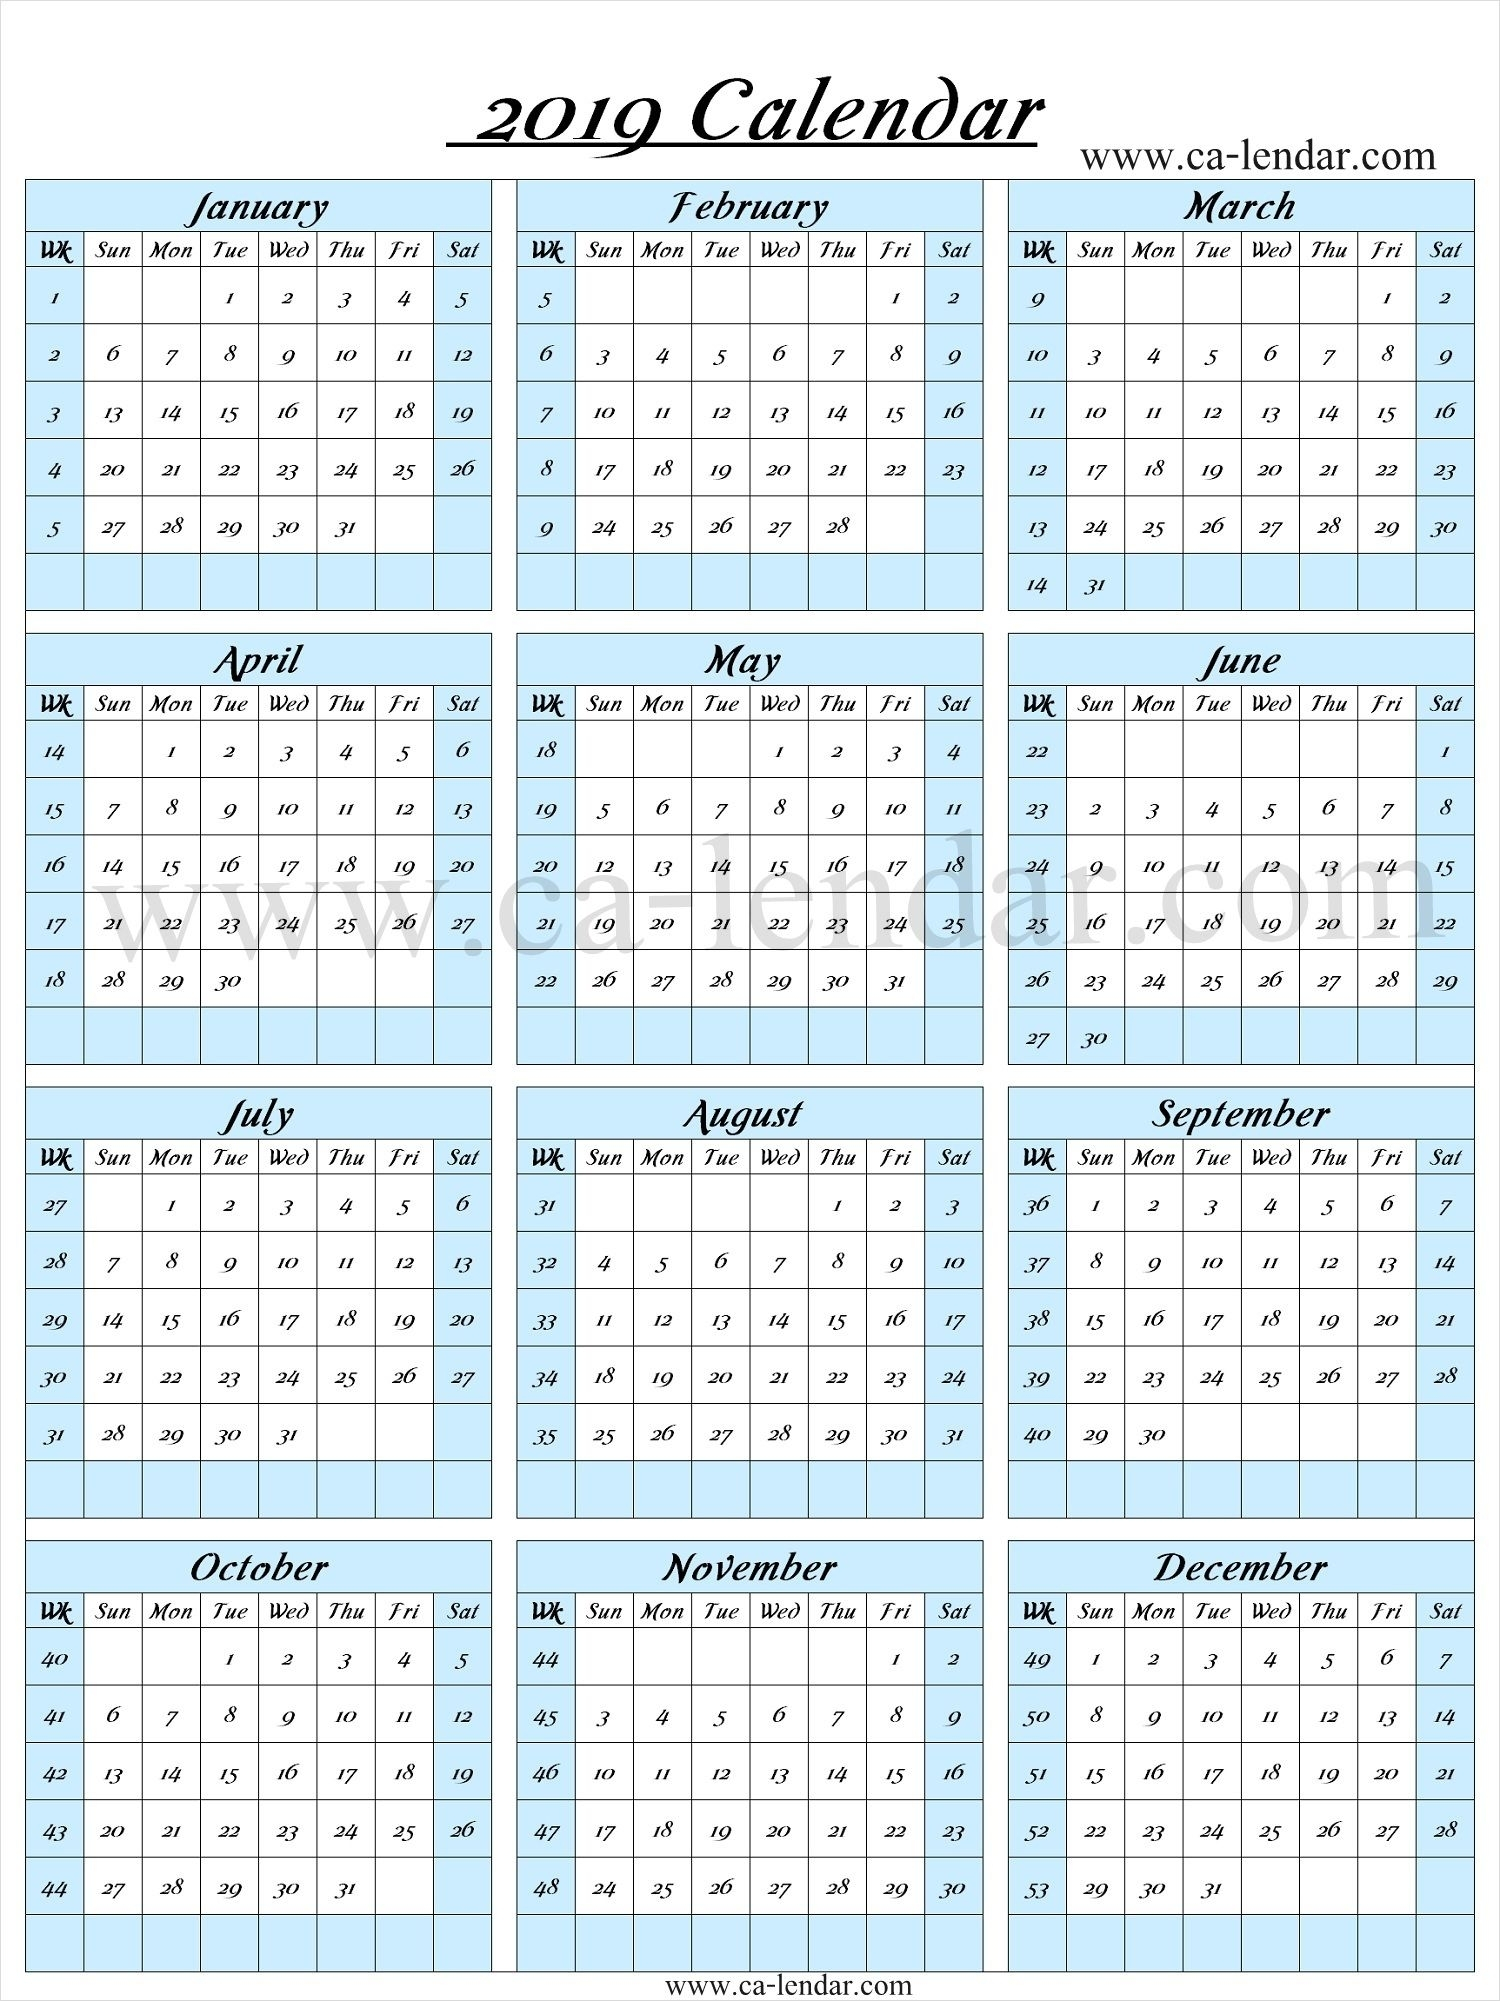 2019 Calendar With Week Numbers | Calendar With Week Numbers with regard to Calendar With Week Numbers 2019/2020